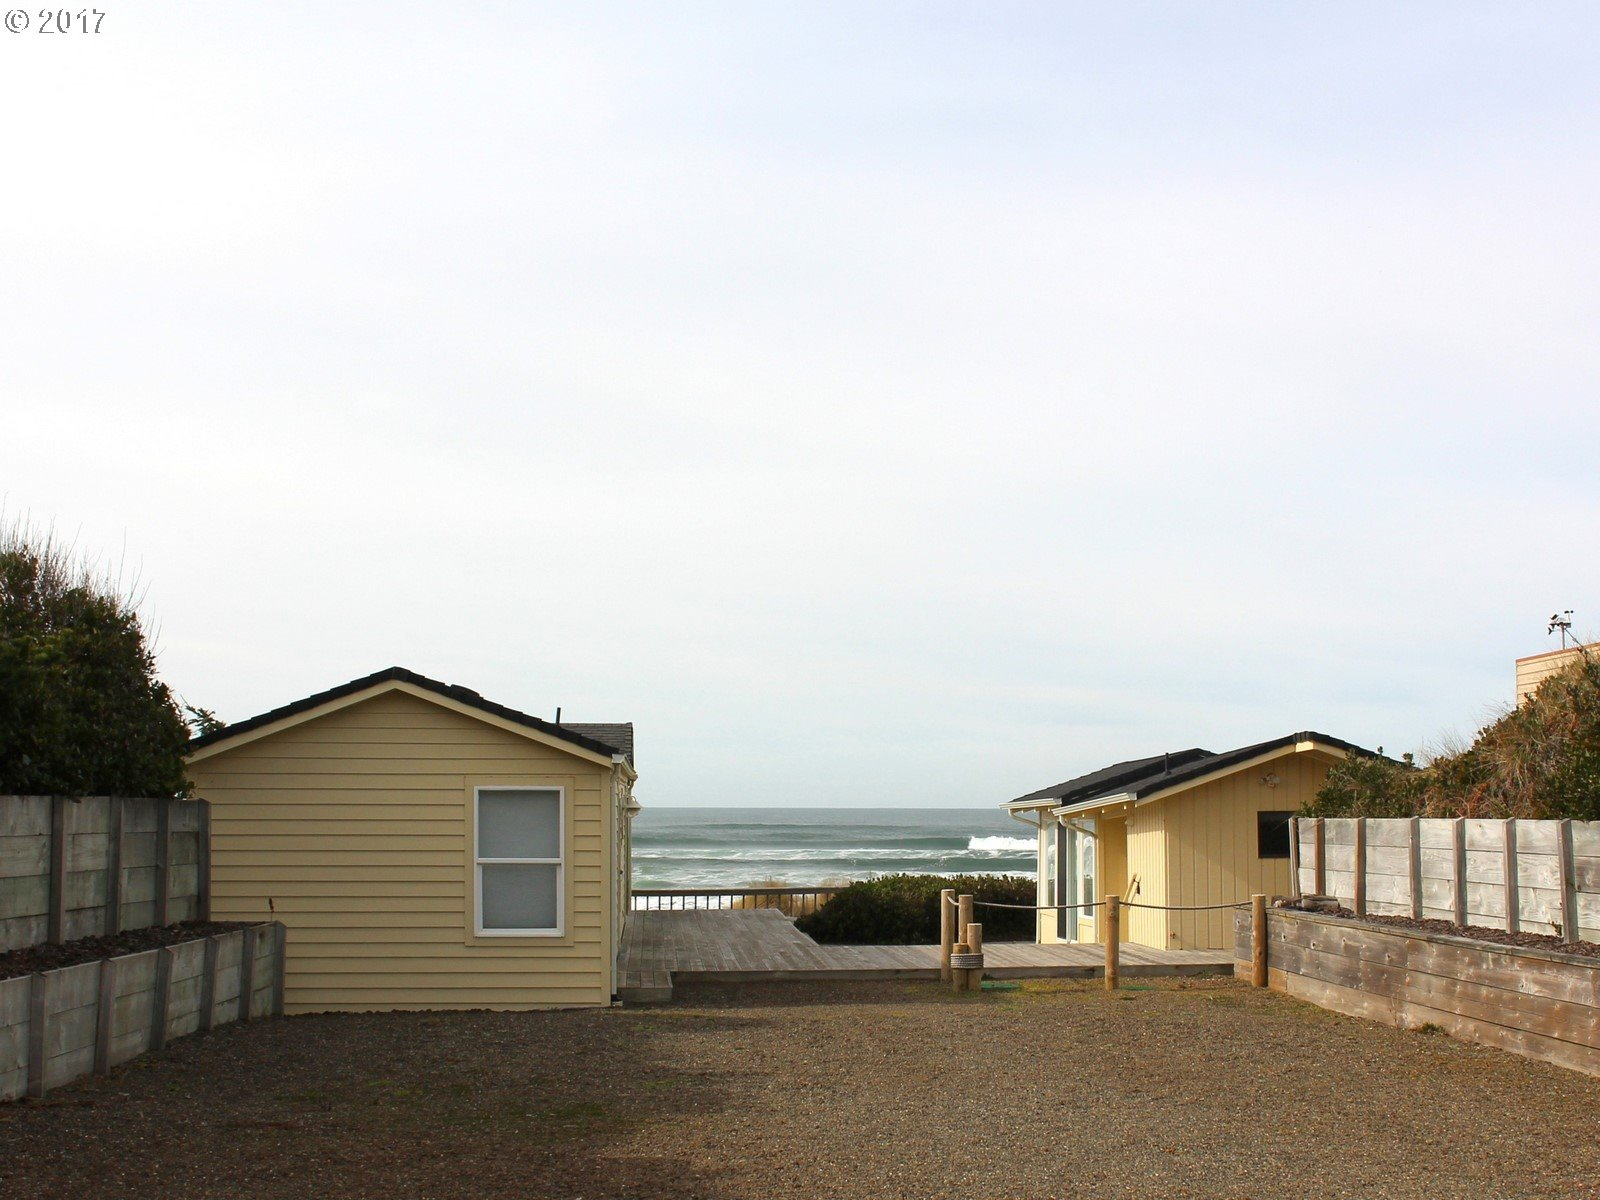 88636 3RD AVE, Florence, OR 97439